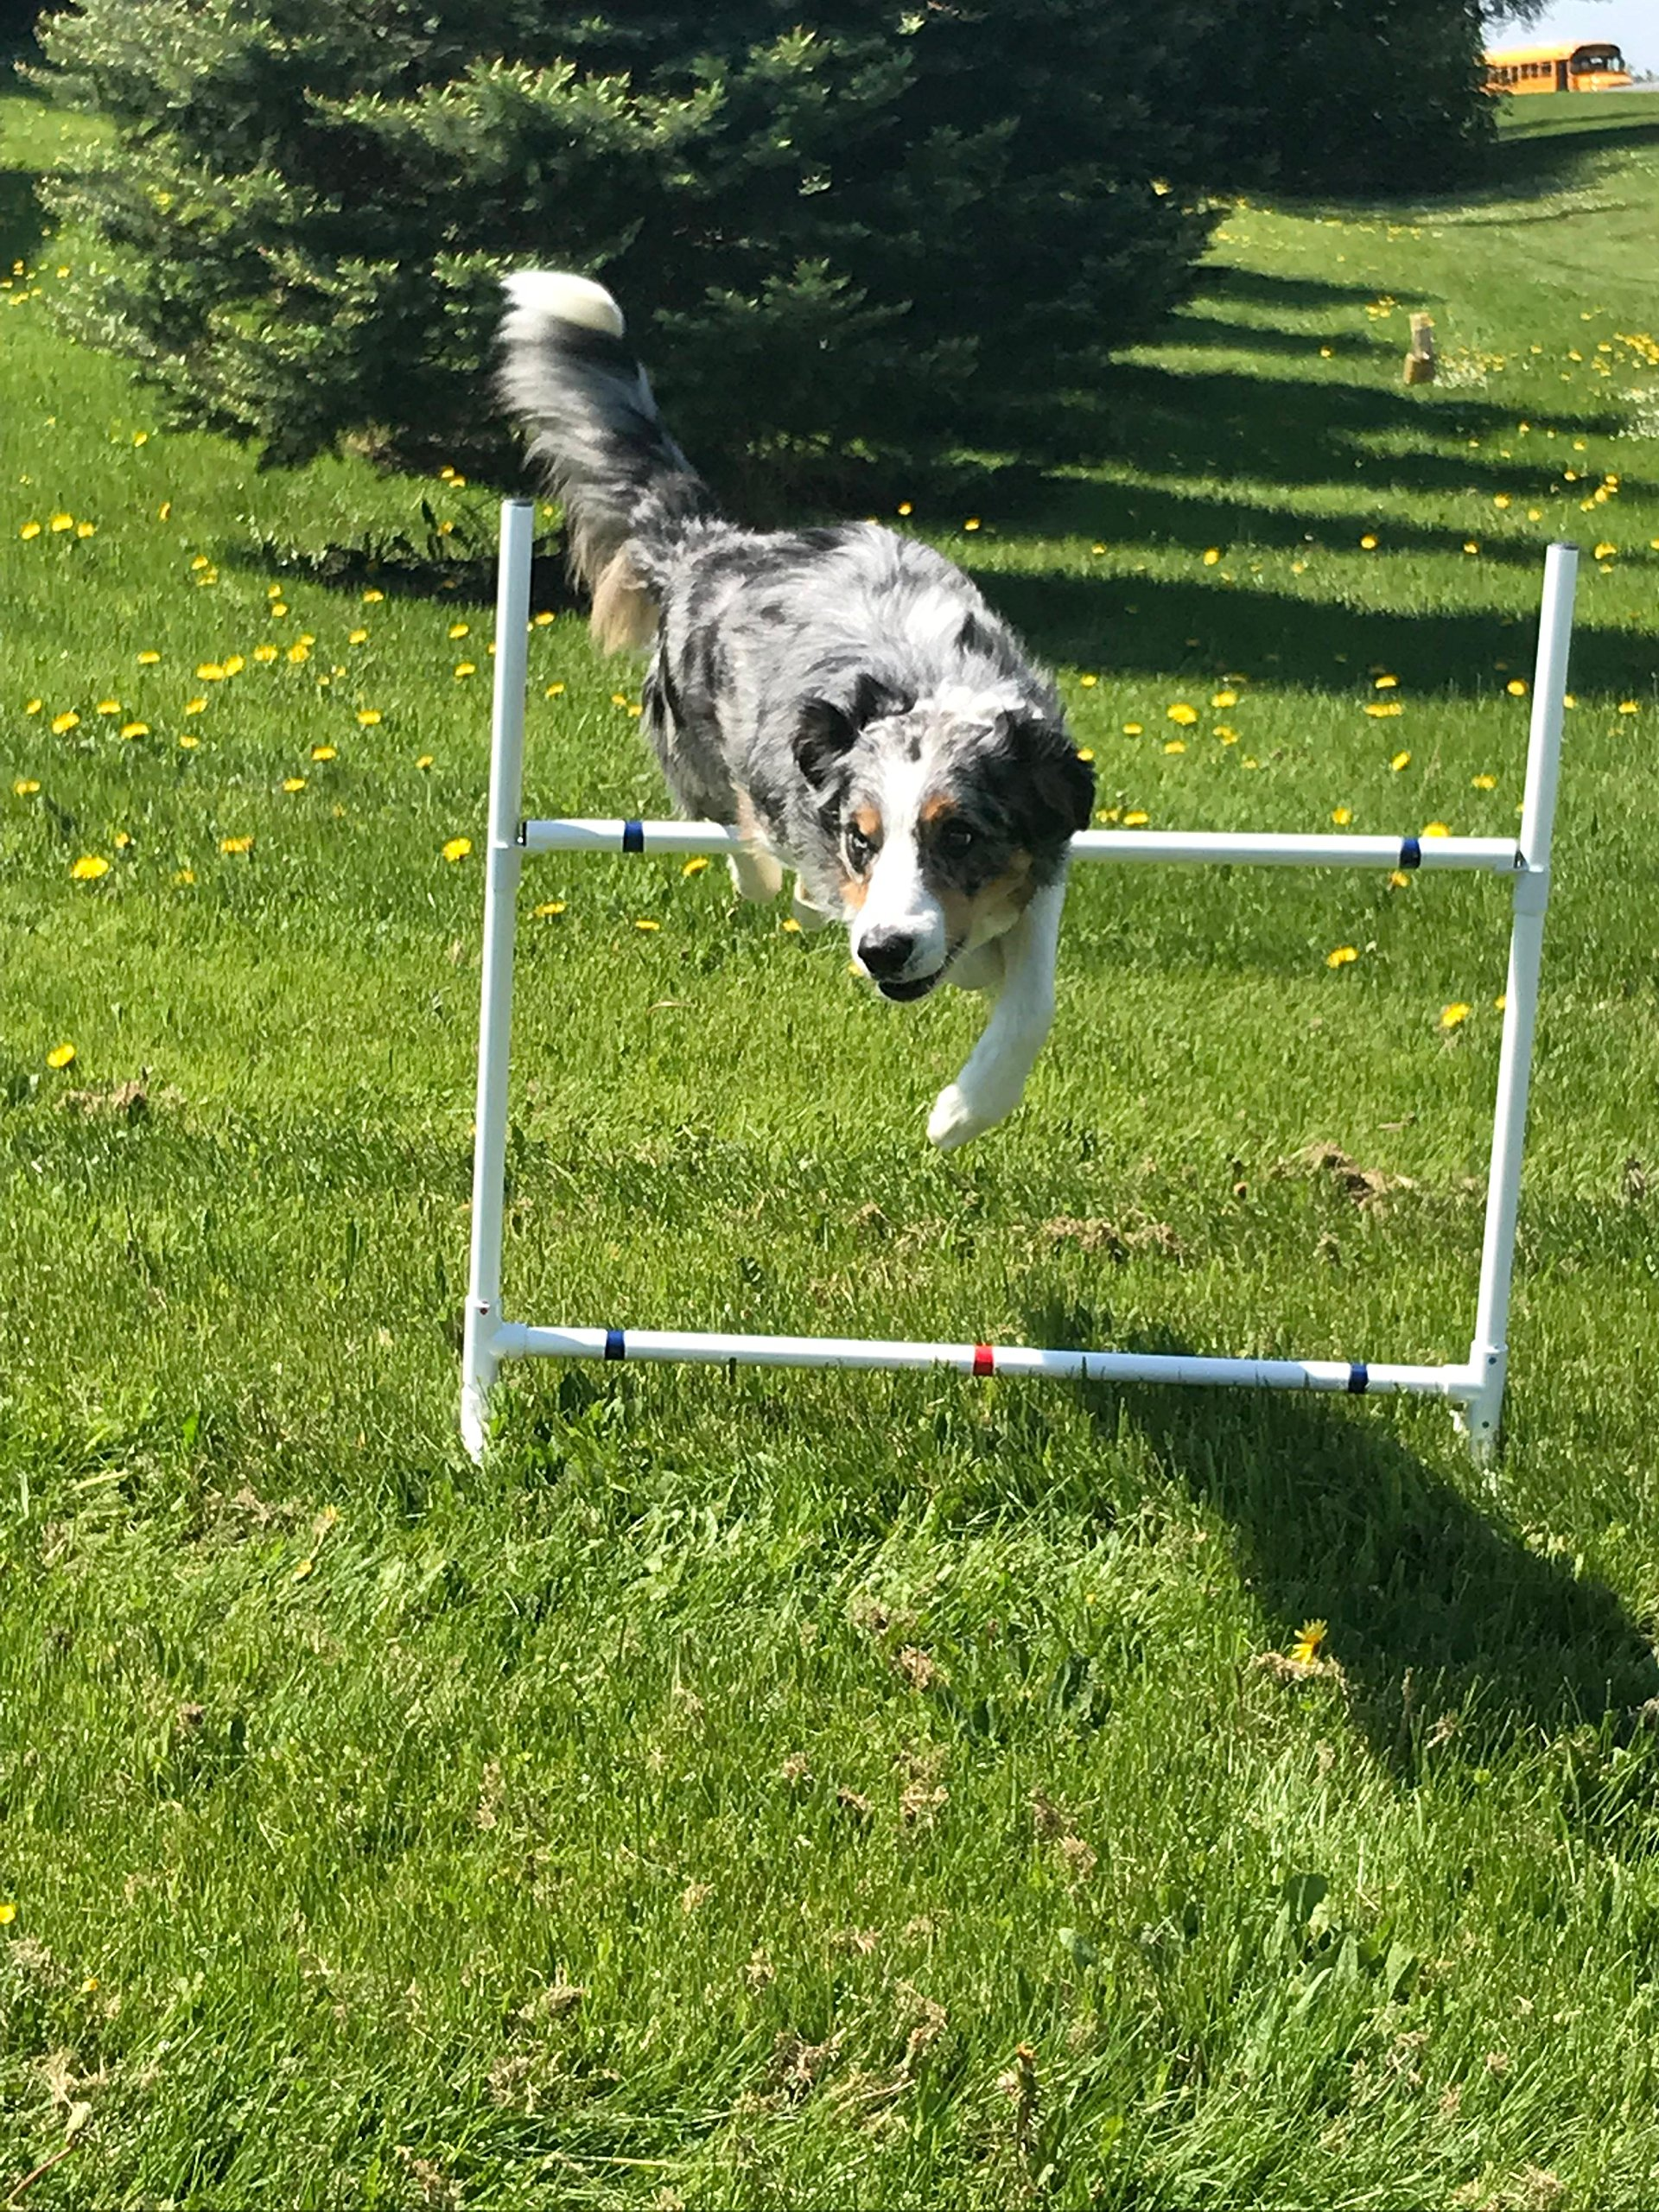 Dog Agility Equipment Single Bar Jumps | Set of 2 jumps by Dog Agility Shop, LLC (Image #1)